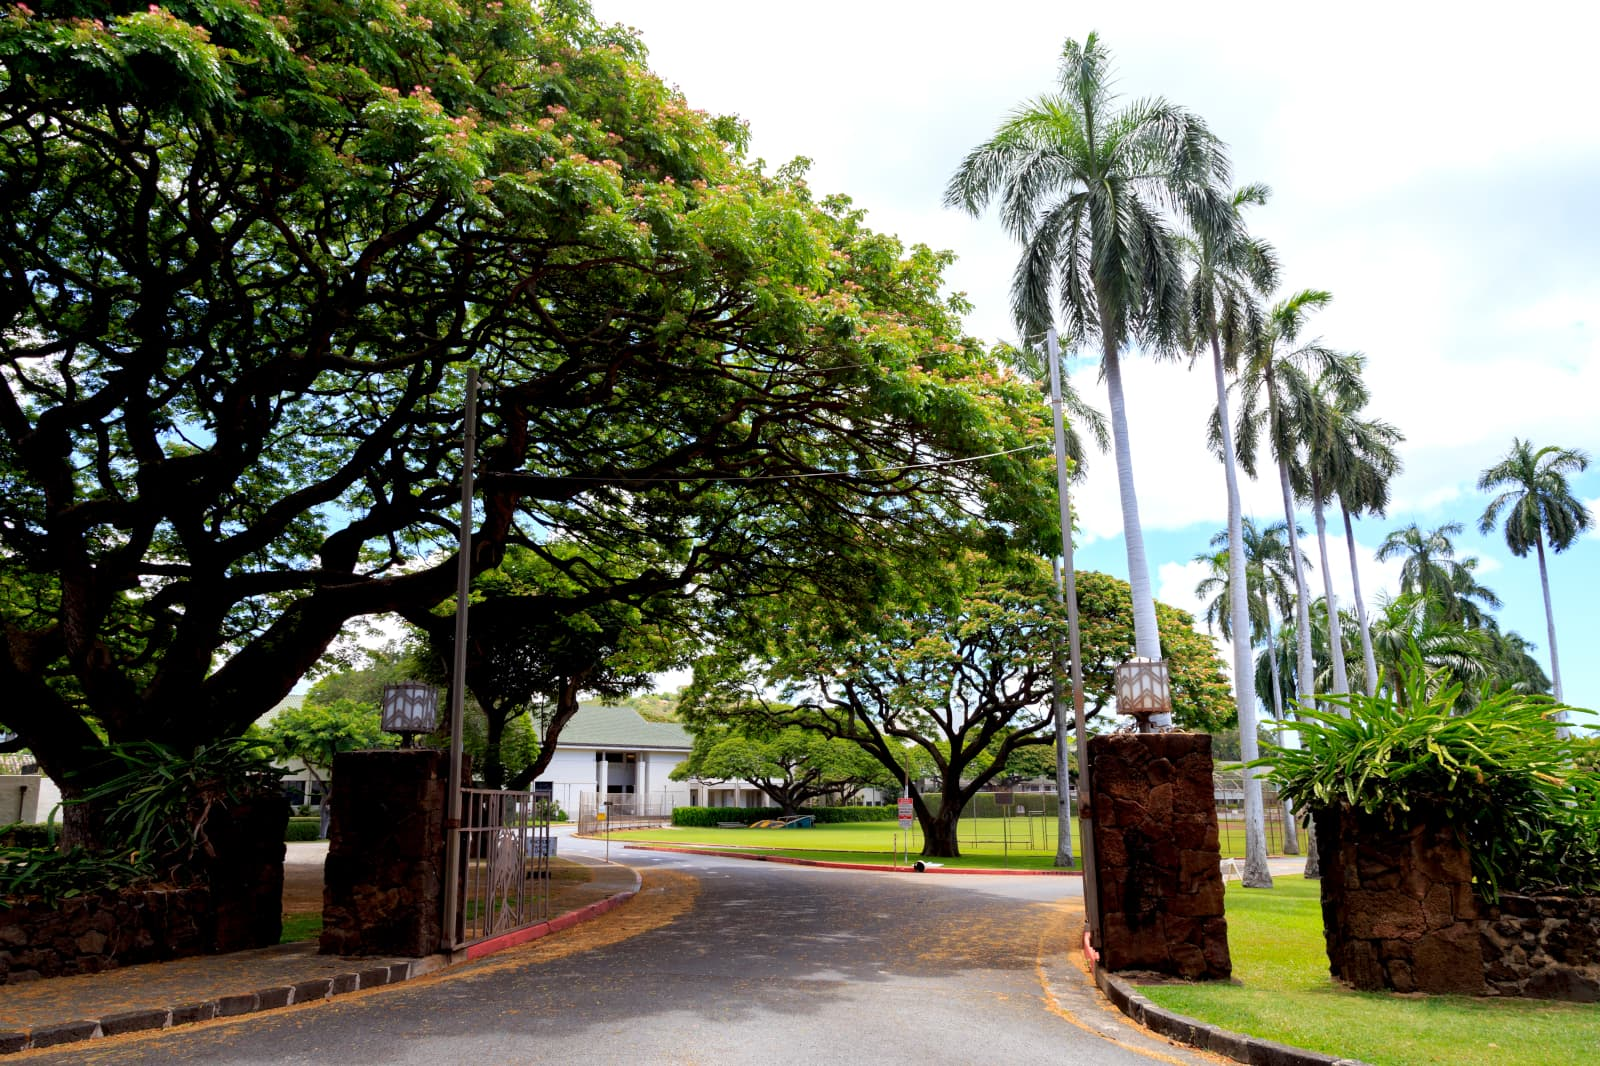 Punahao Private School Entrance